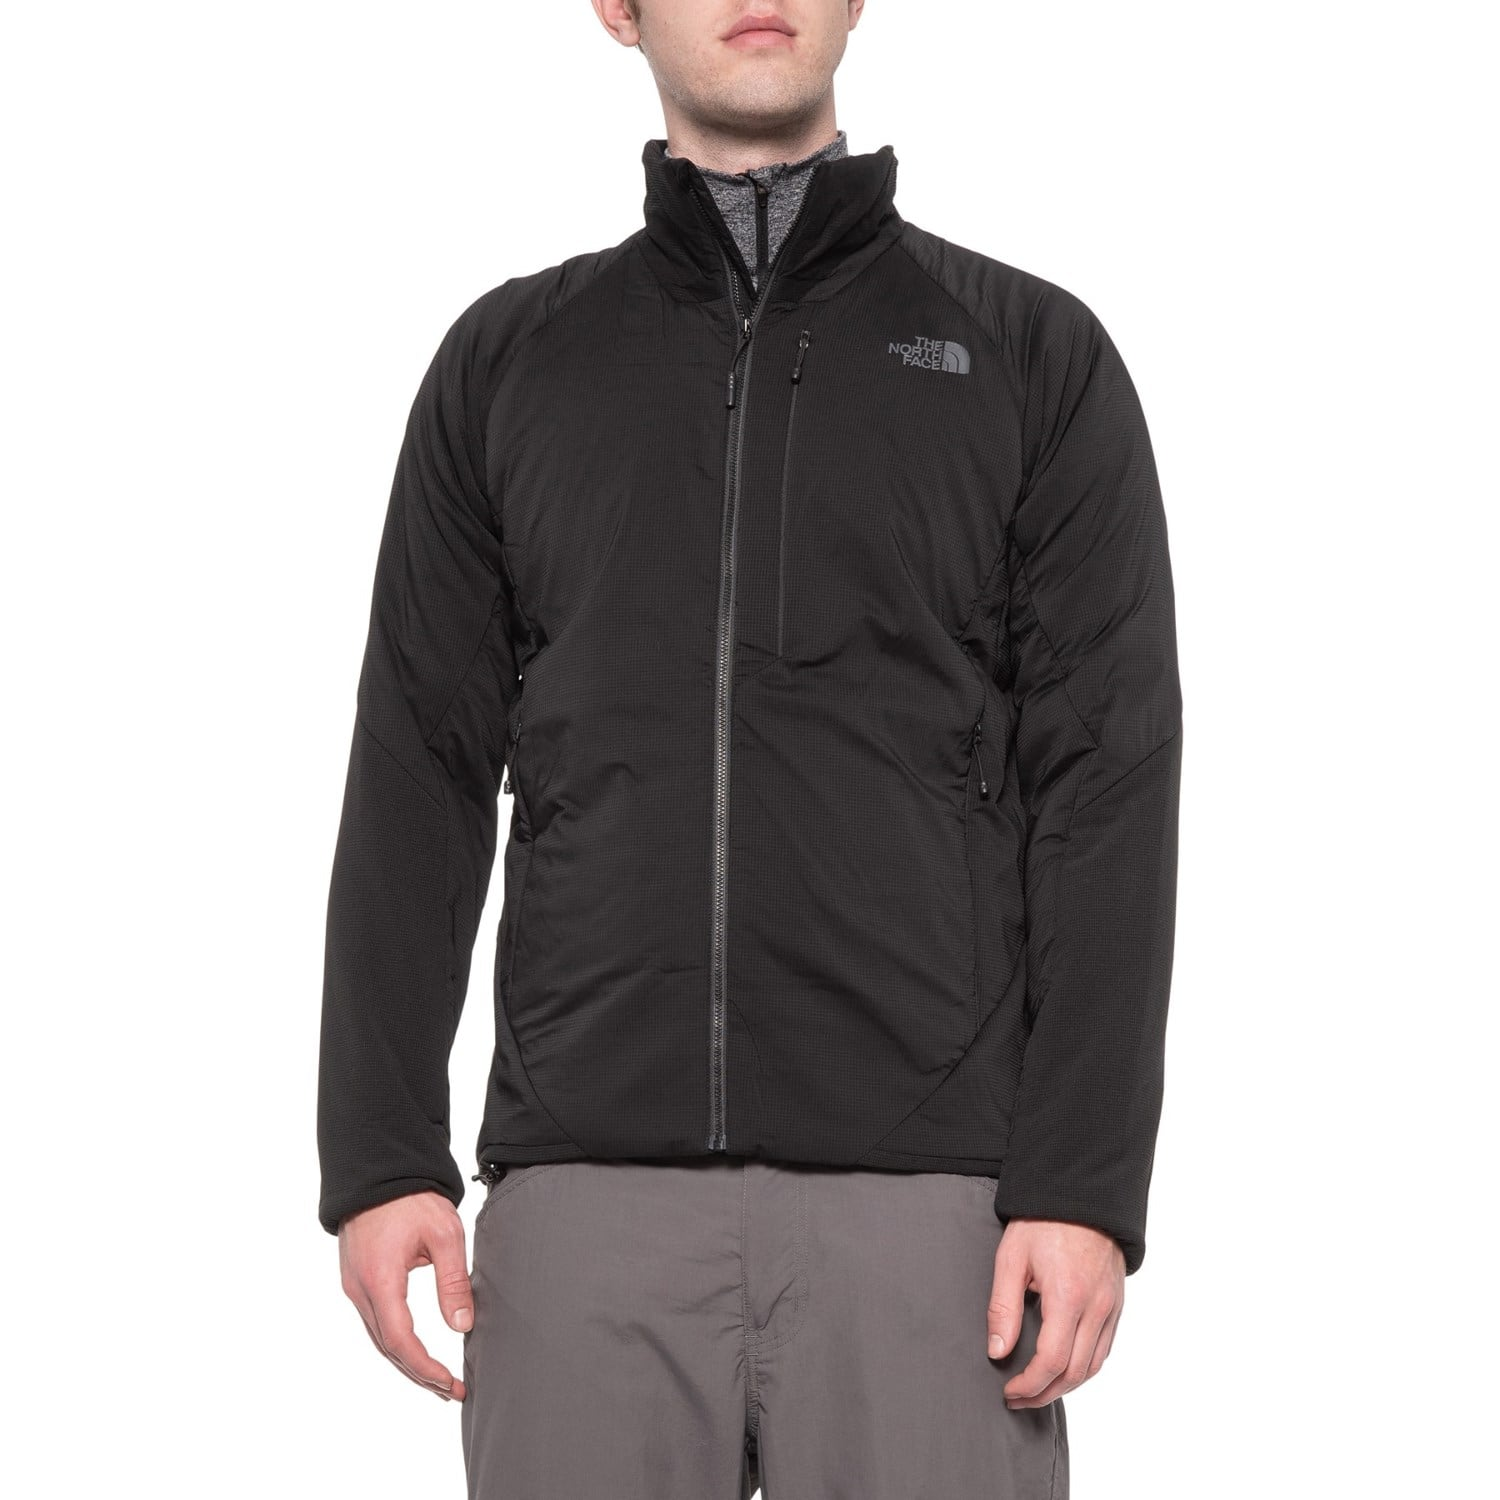 The North Face Ventrix® Jacket - Insulated (For Men) - Black - $99.99 +FS @ Sierra